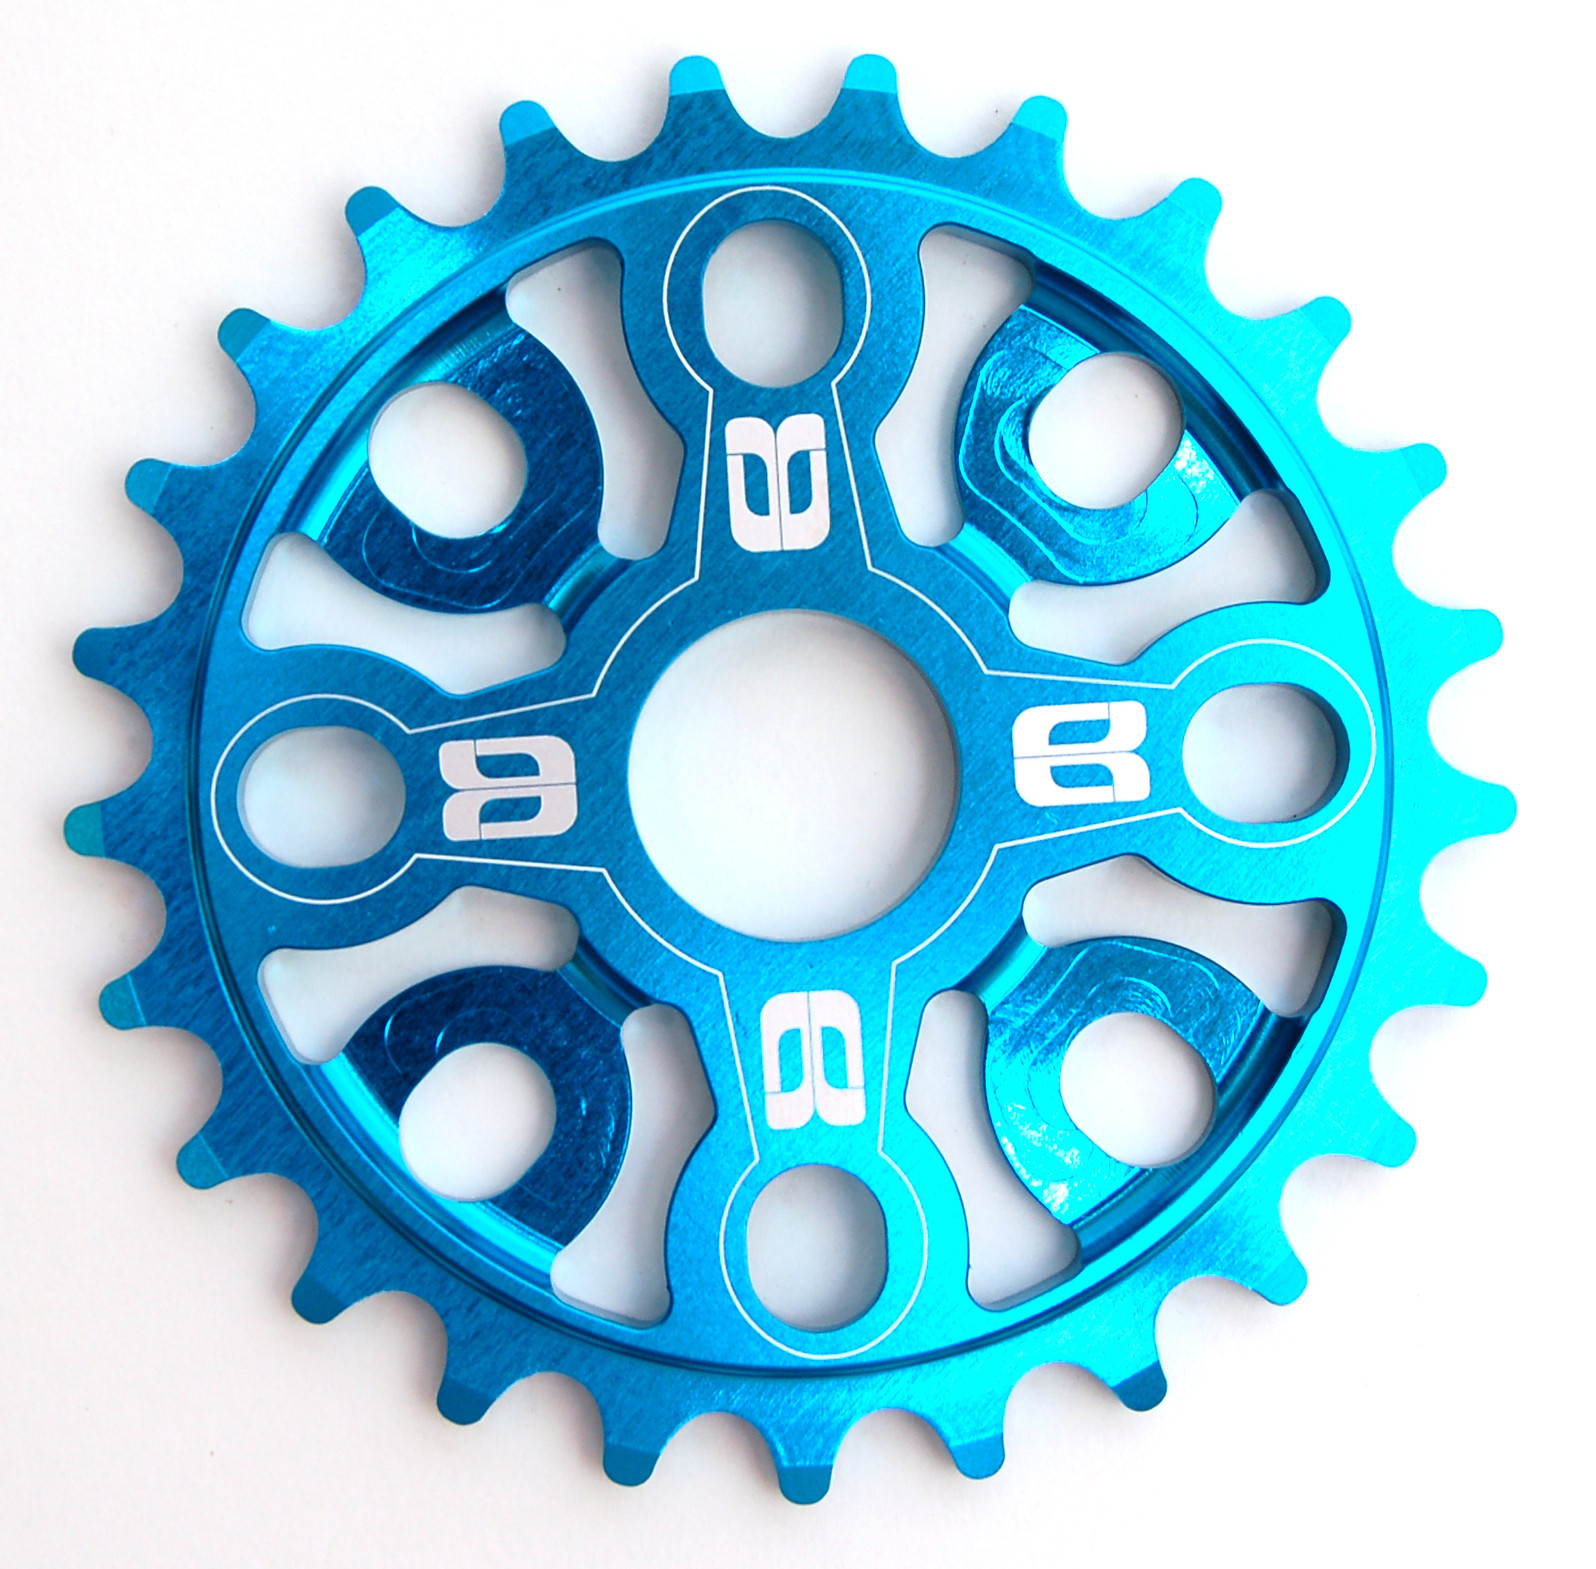 Eastern Medusa 3D Chainring Sprocket Medusa 3D Matte Hot Blue